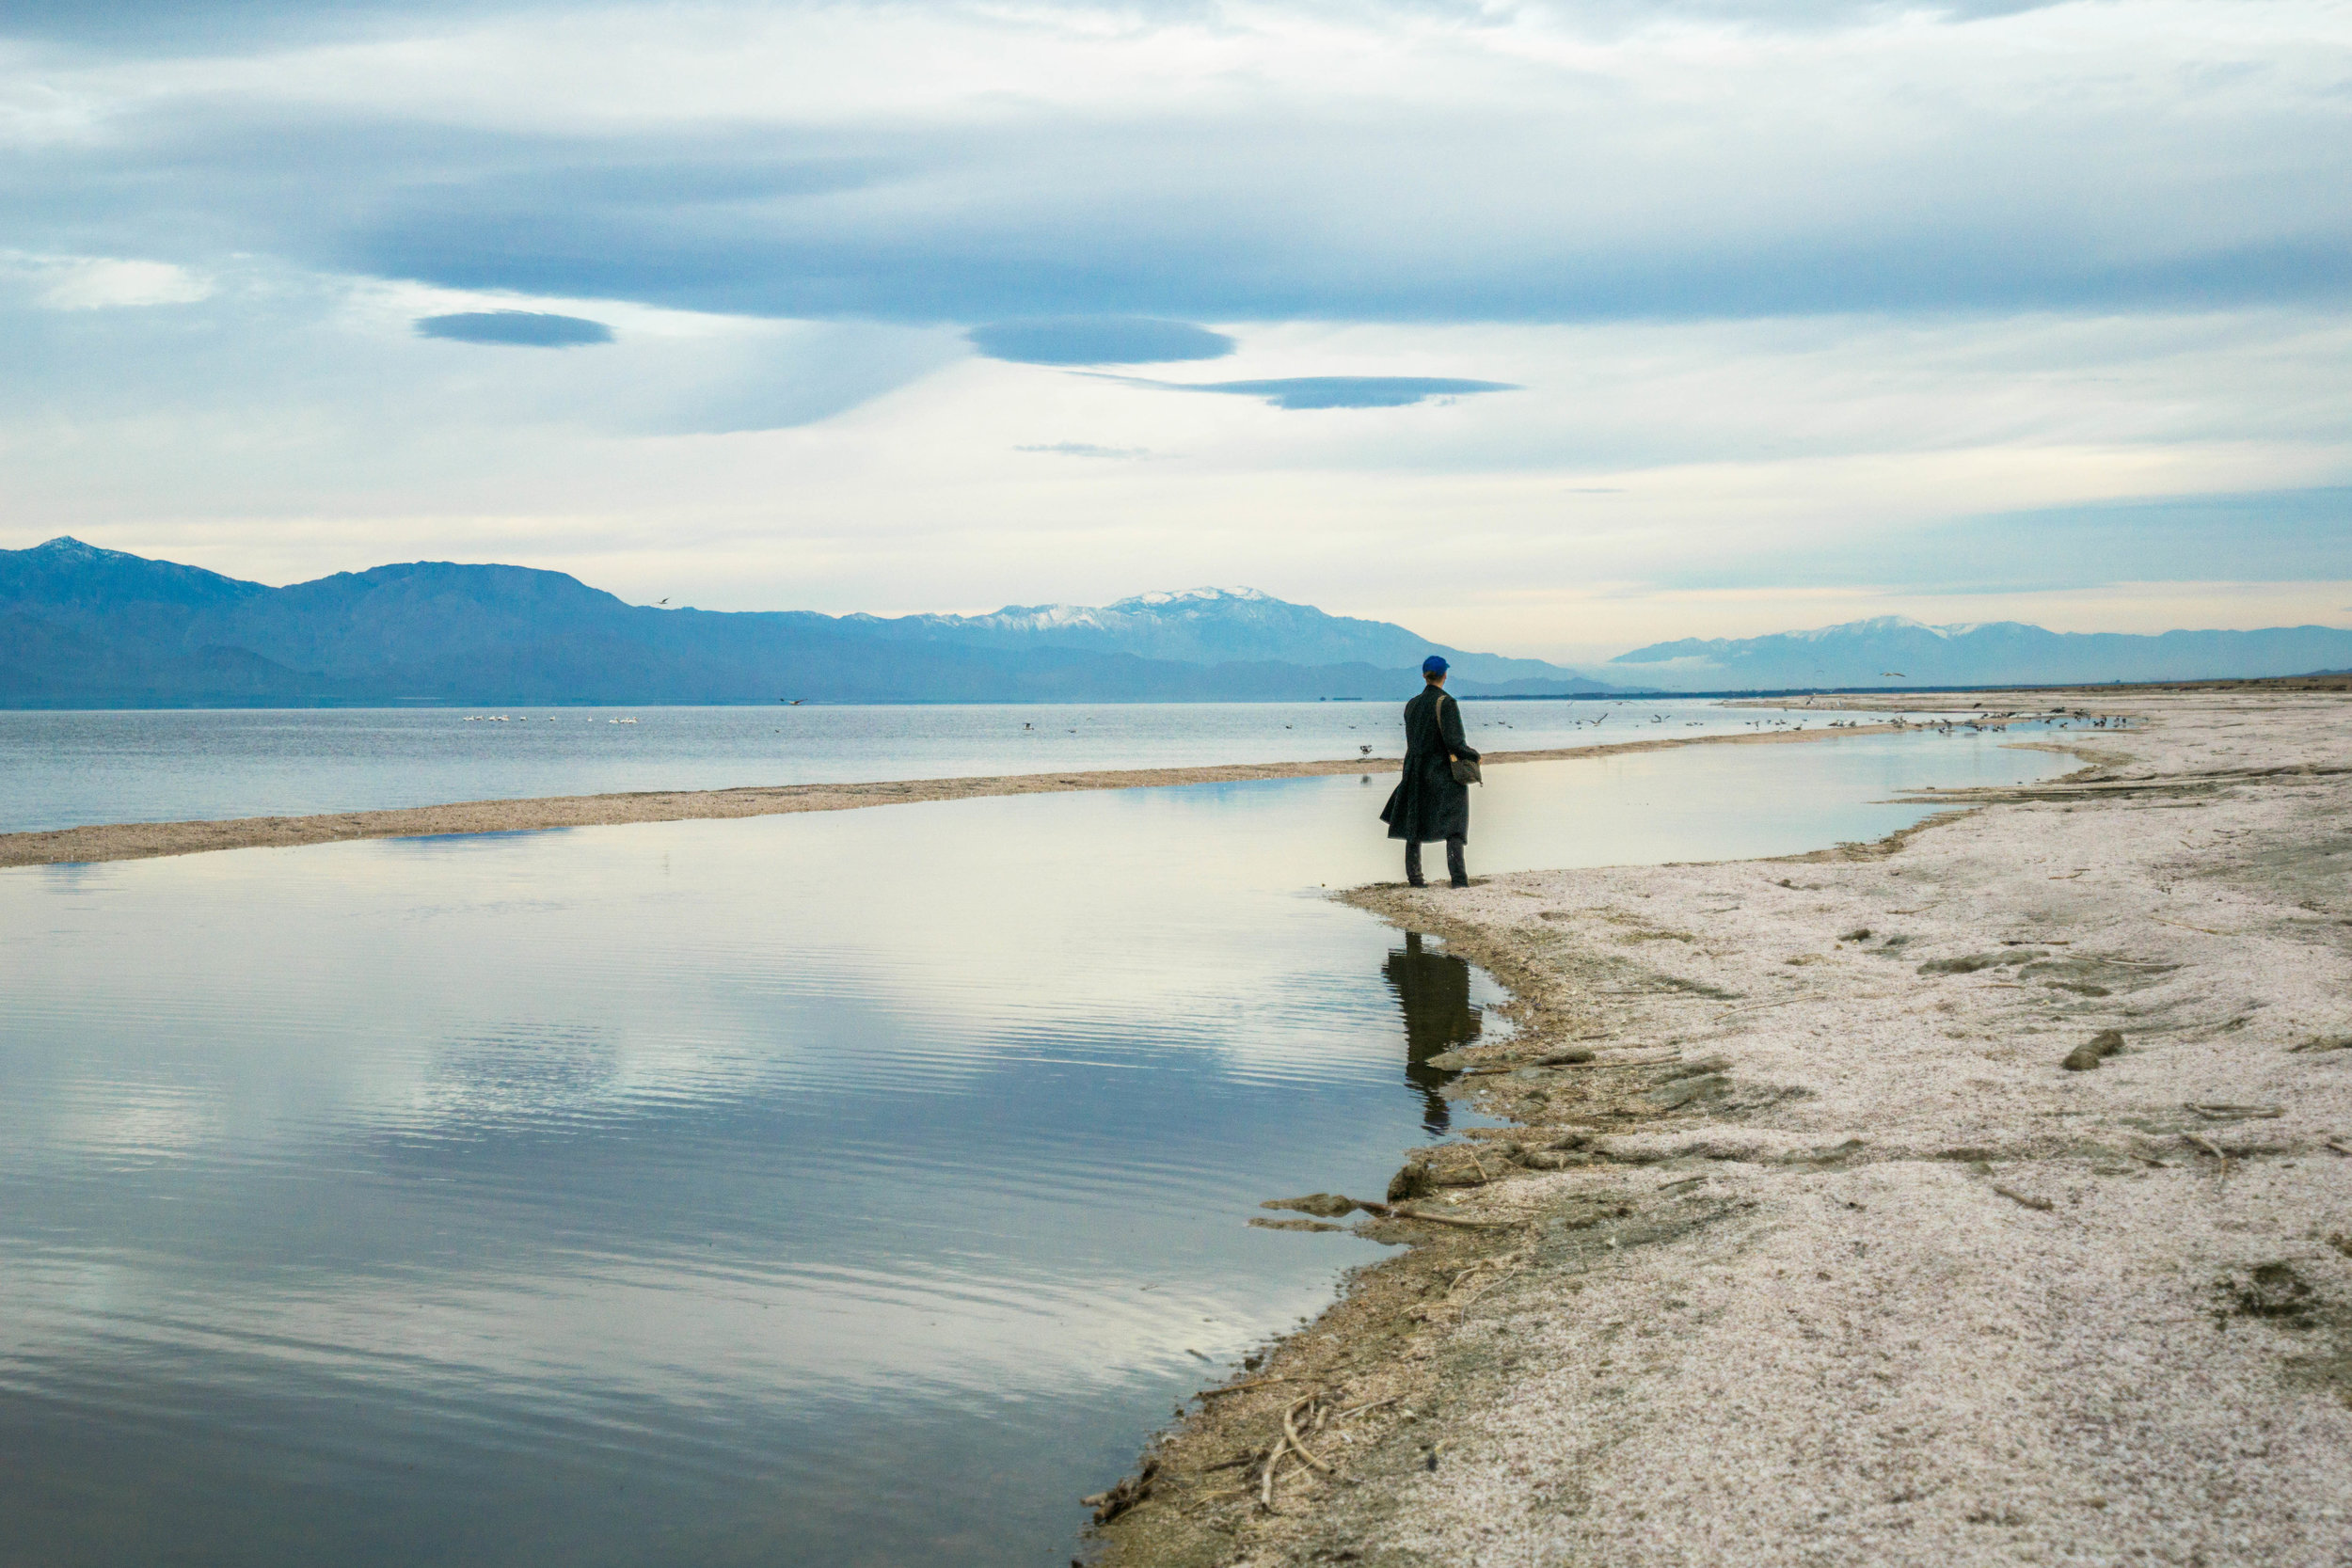 At a whopping 35 miles long & 15 miles wide, one cannot see the entire body of the Salton from the ground level.